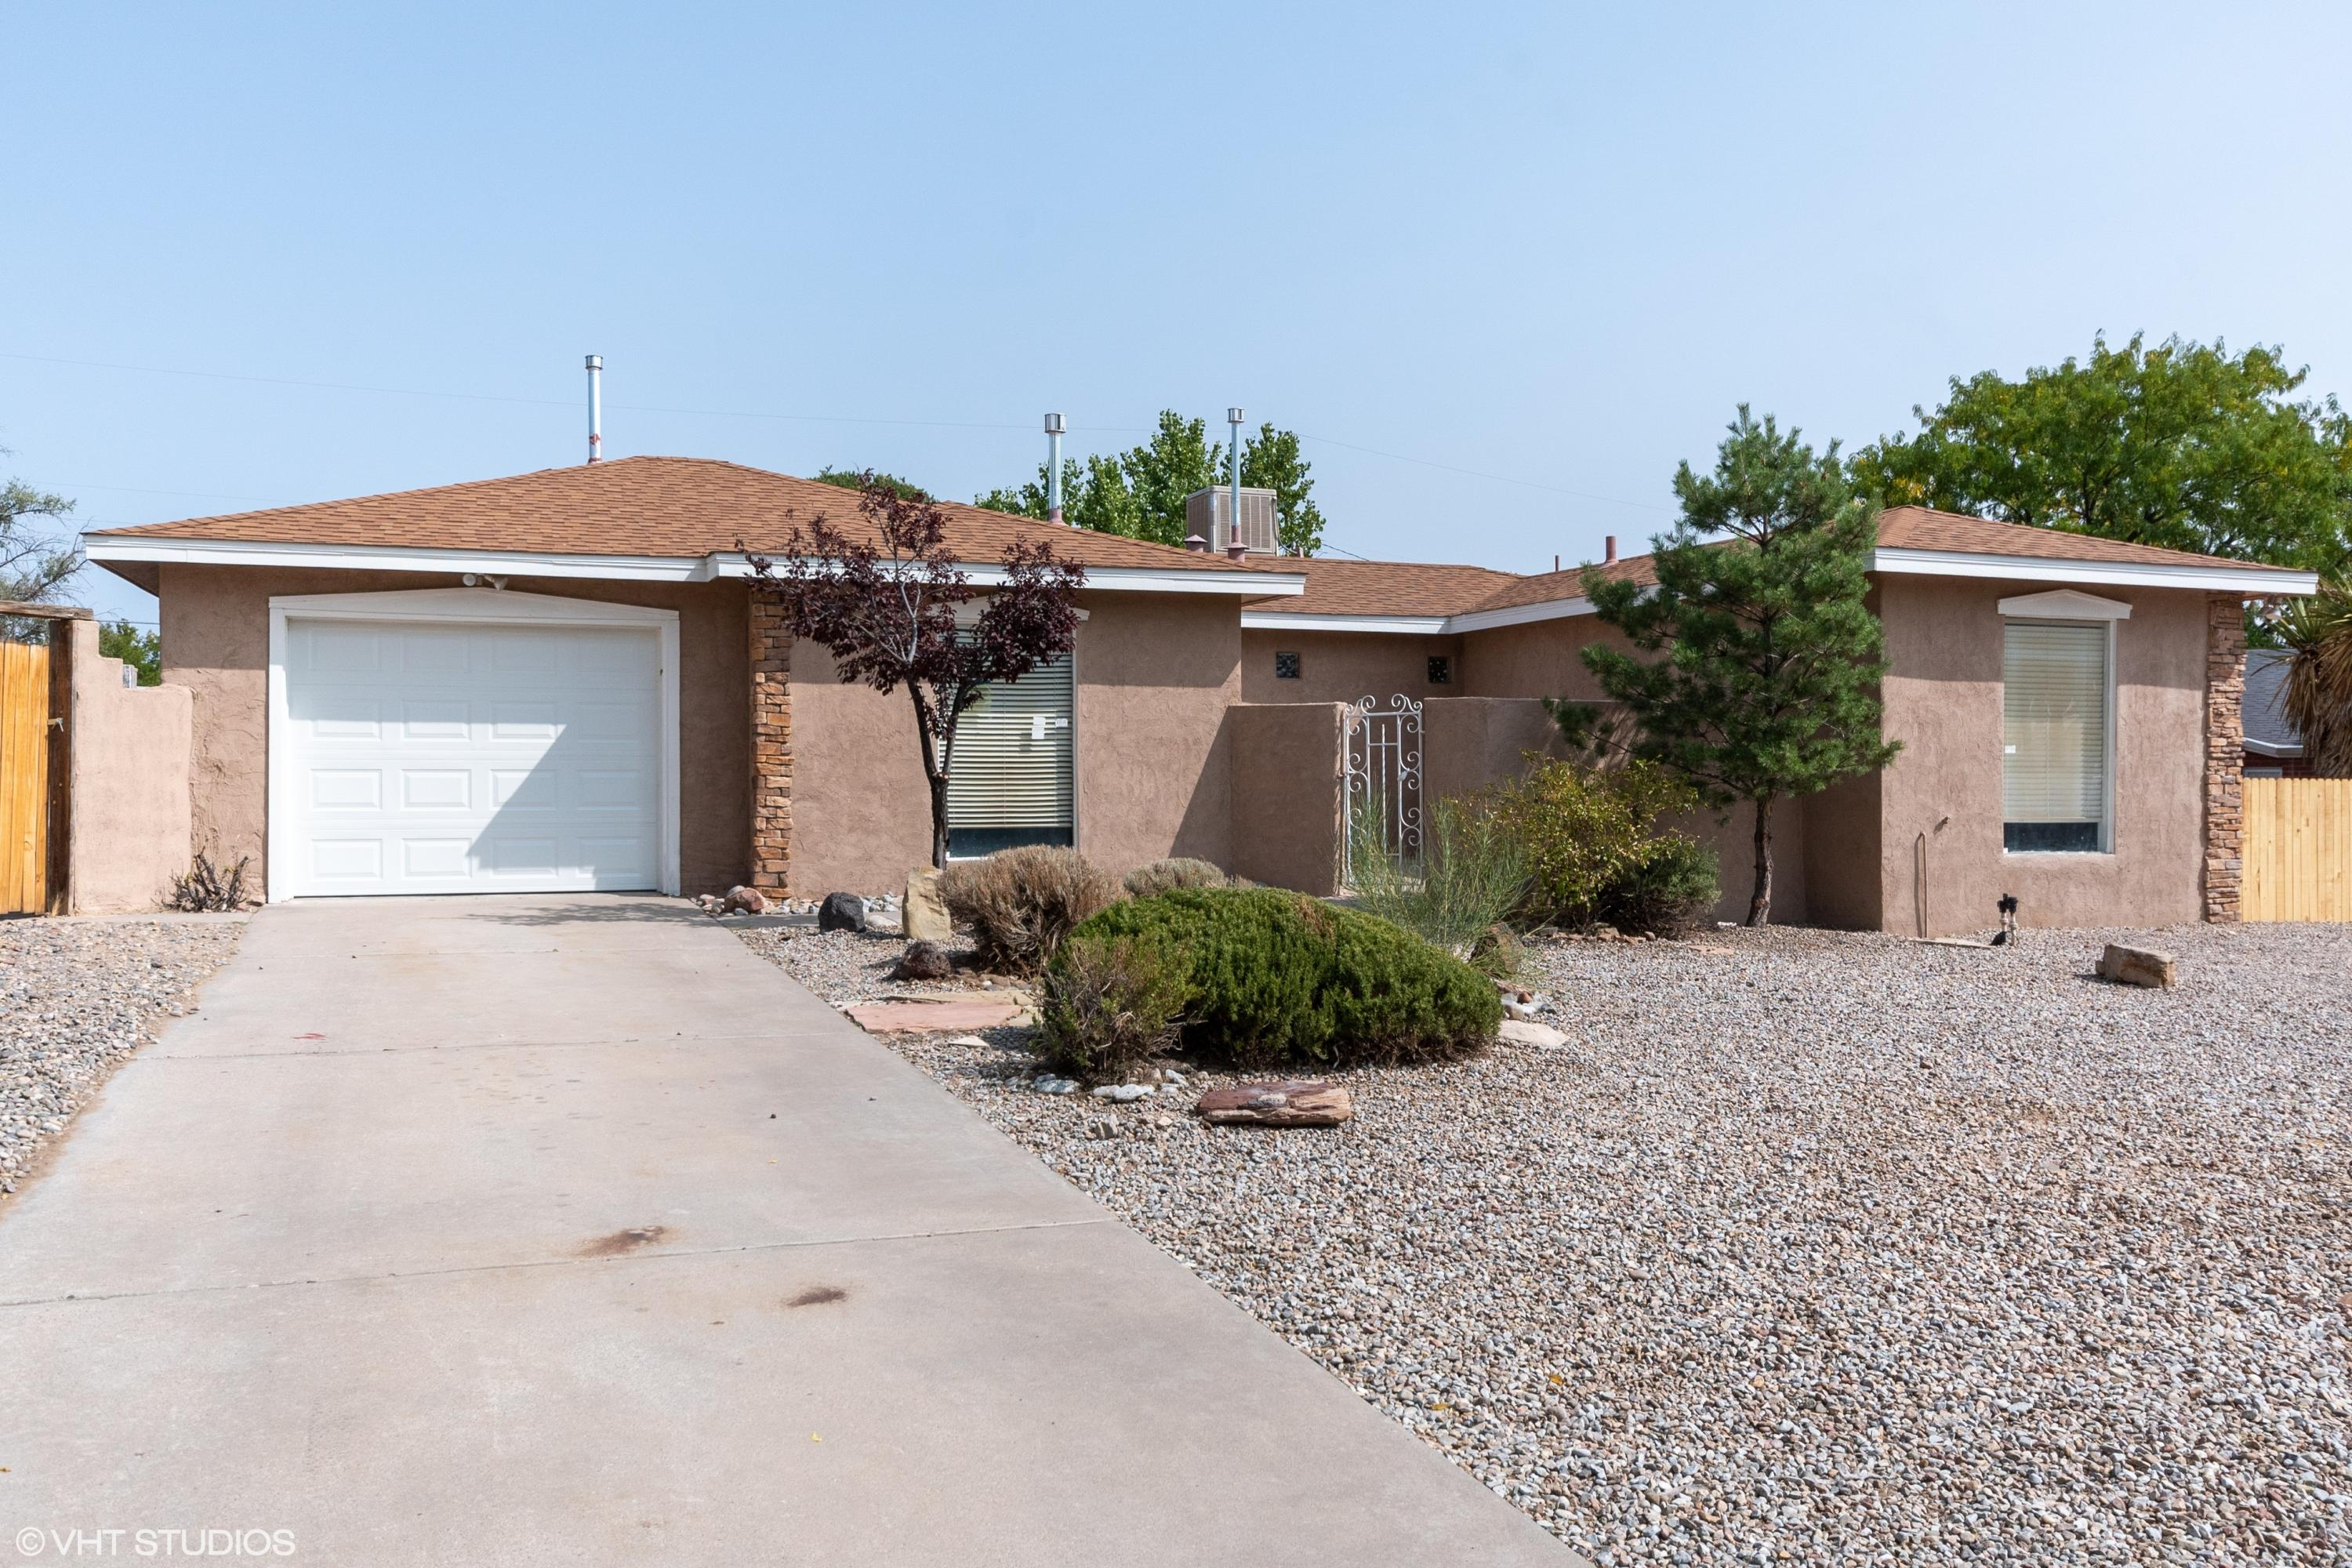 Move in ready home in Rio Rancho. Home features three bedrooms and two baths. Fresh pain throughout, new flooring. Kitchen offers a beautiful layout with plenty of cabinet space and new stainless steel appliances. Great location, near schools and shopping. Possible backyard access.